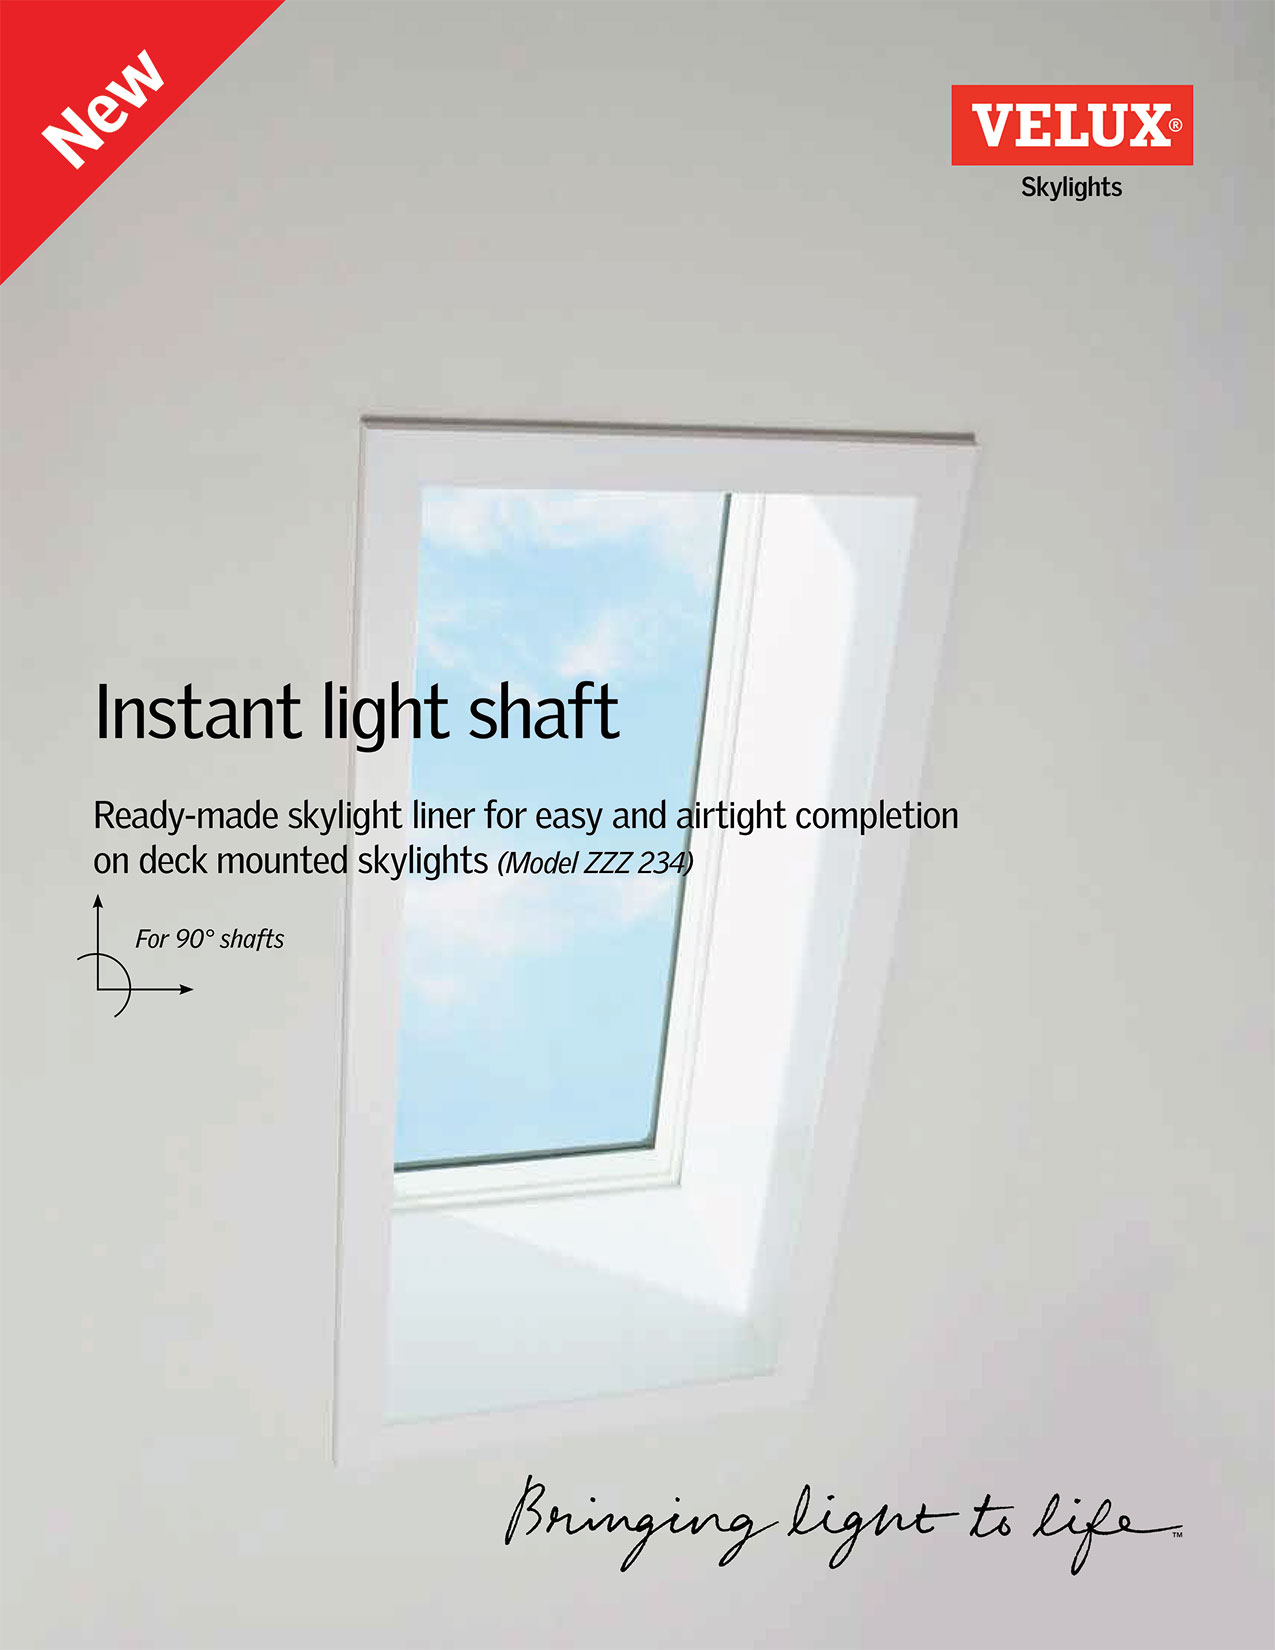 instant-light-shaft-flyer